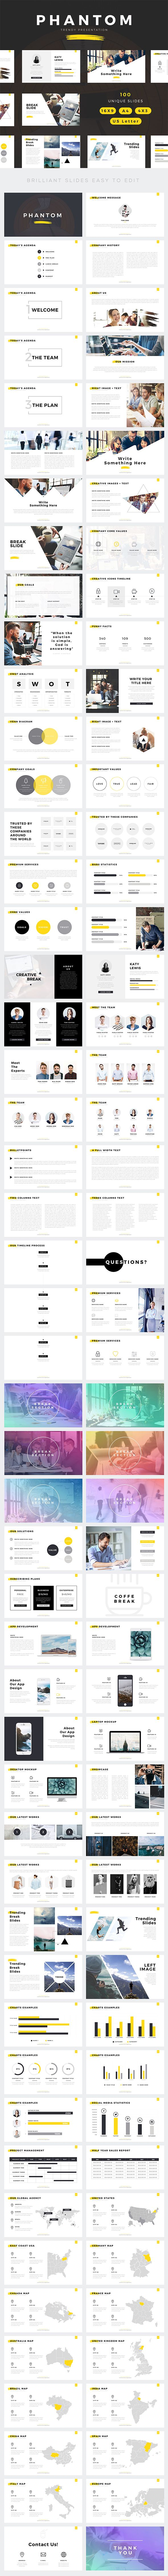 Phantom Modern Powerpoint Template - Creative PowerPoint Templates Download here:  https://graphicriver.net/item/phantom-modern-powerpoint-template/18705353?ref=classicdesignp